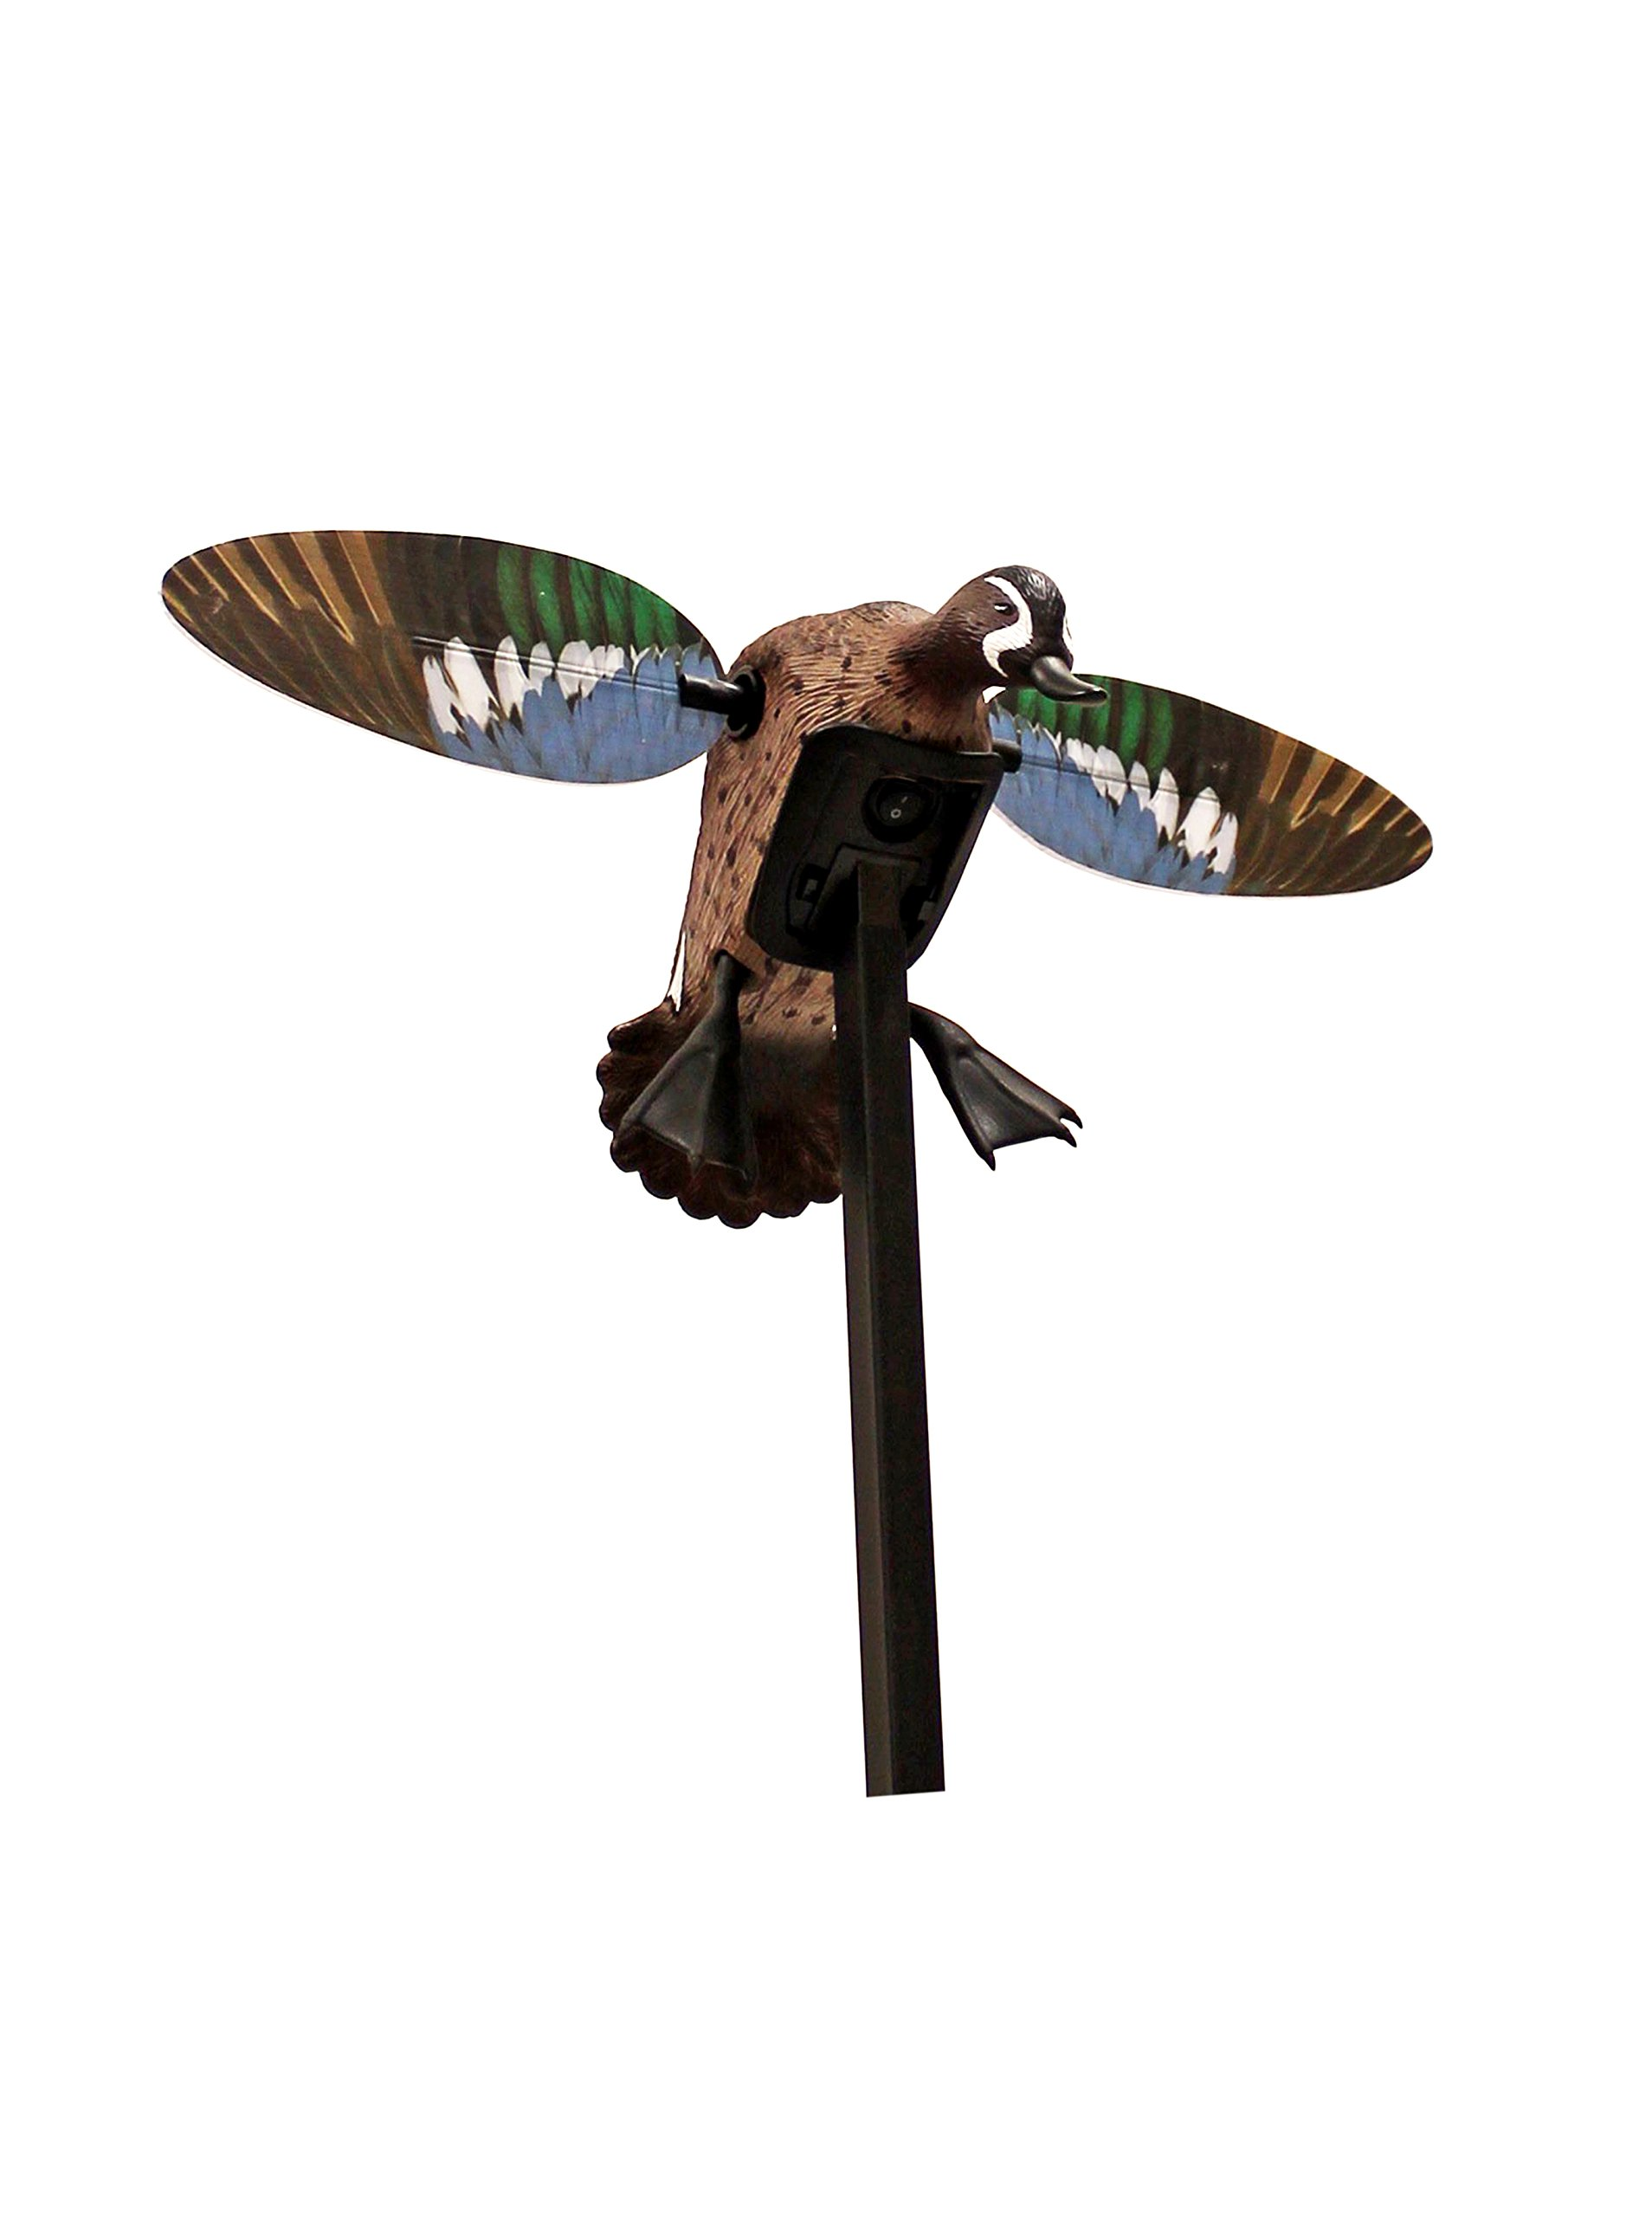 MOJO Outdoors Elite Series Duck Hunting Motion Decoy, Blue Wing Teal (New) by MOJO Outdoors